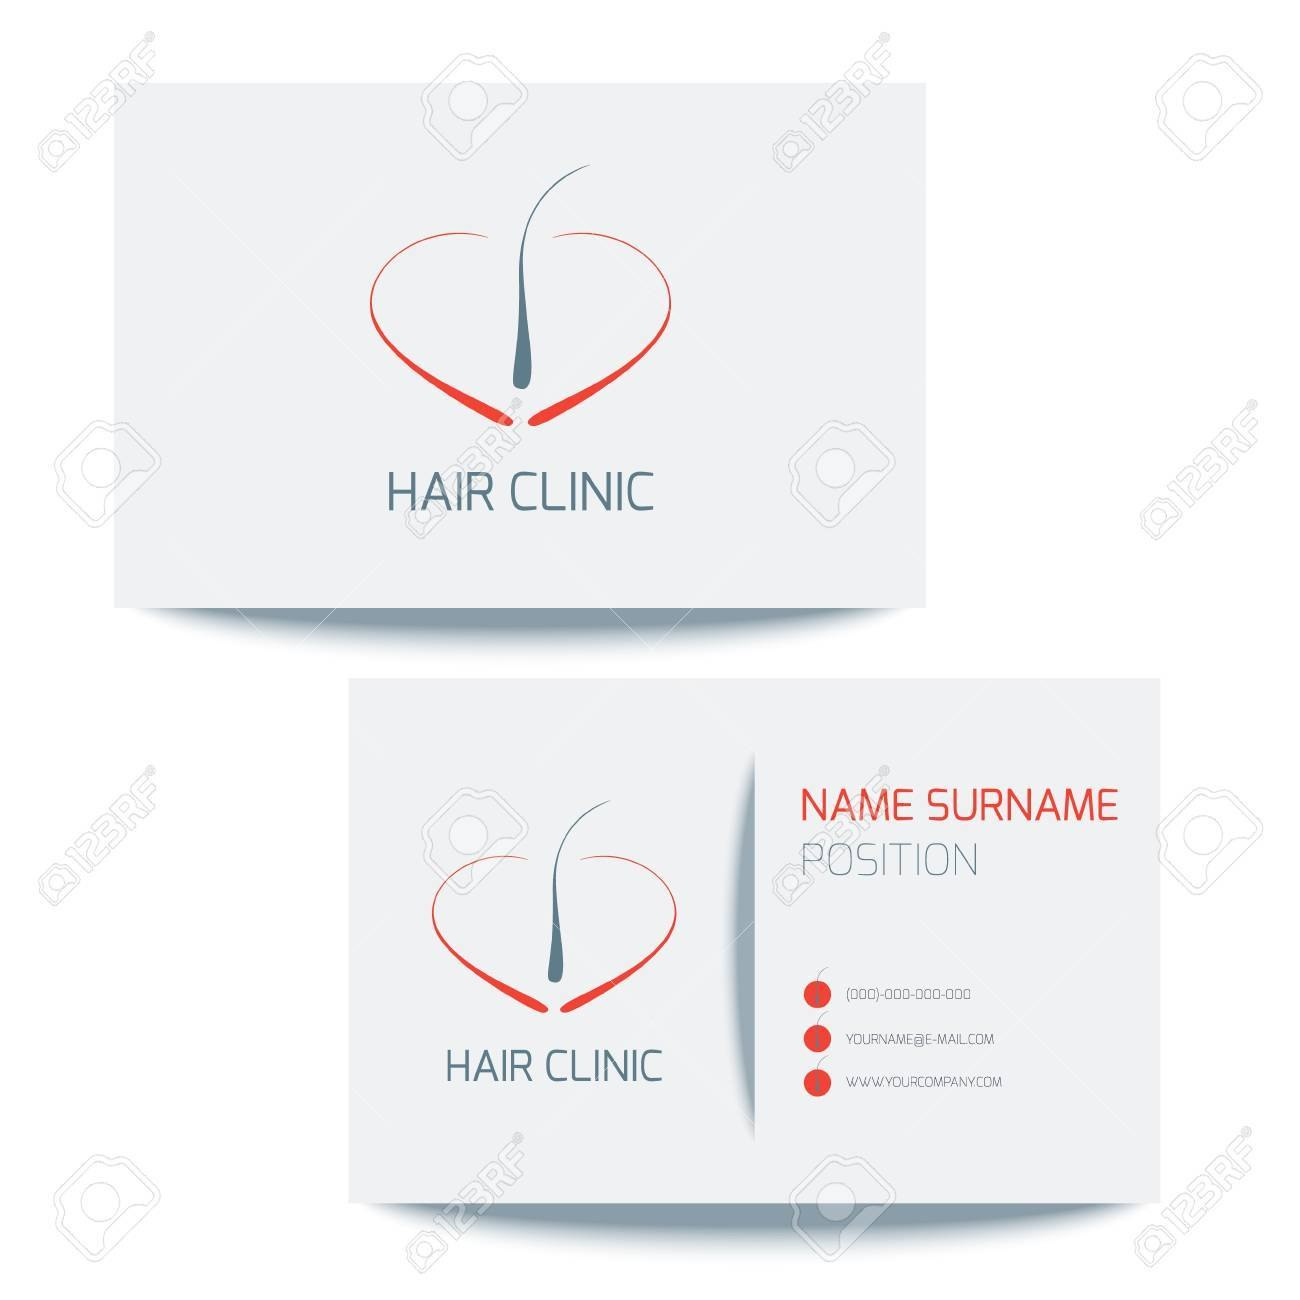 Medical Business Card Template With Hair Follicle Icon Vector Throughout Medical Business Cards Templates Free